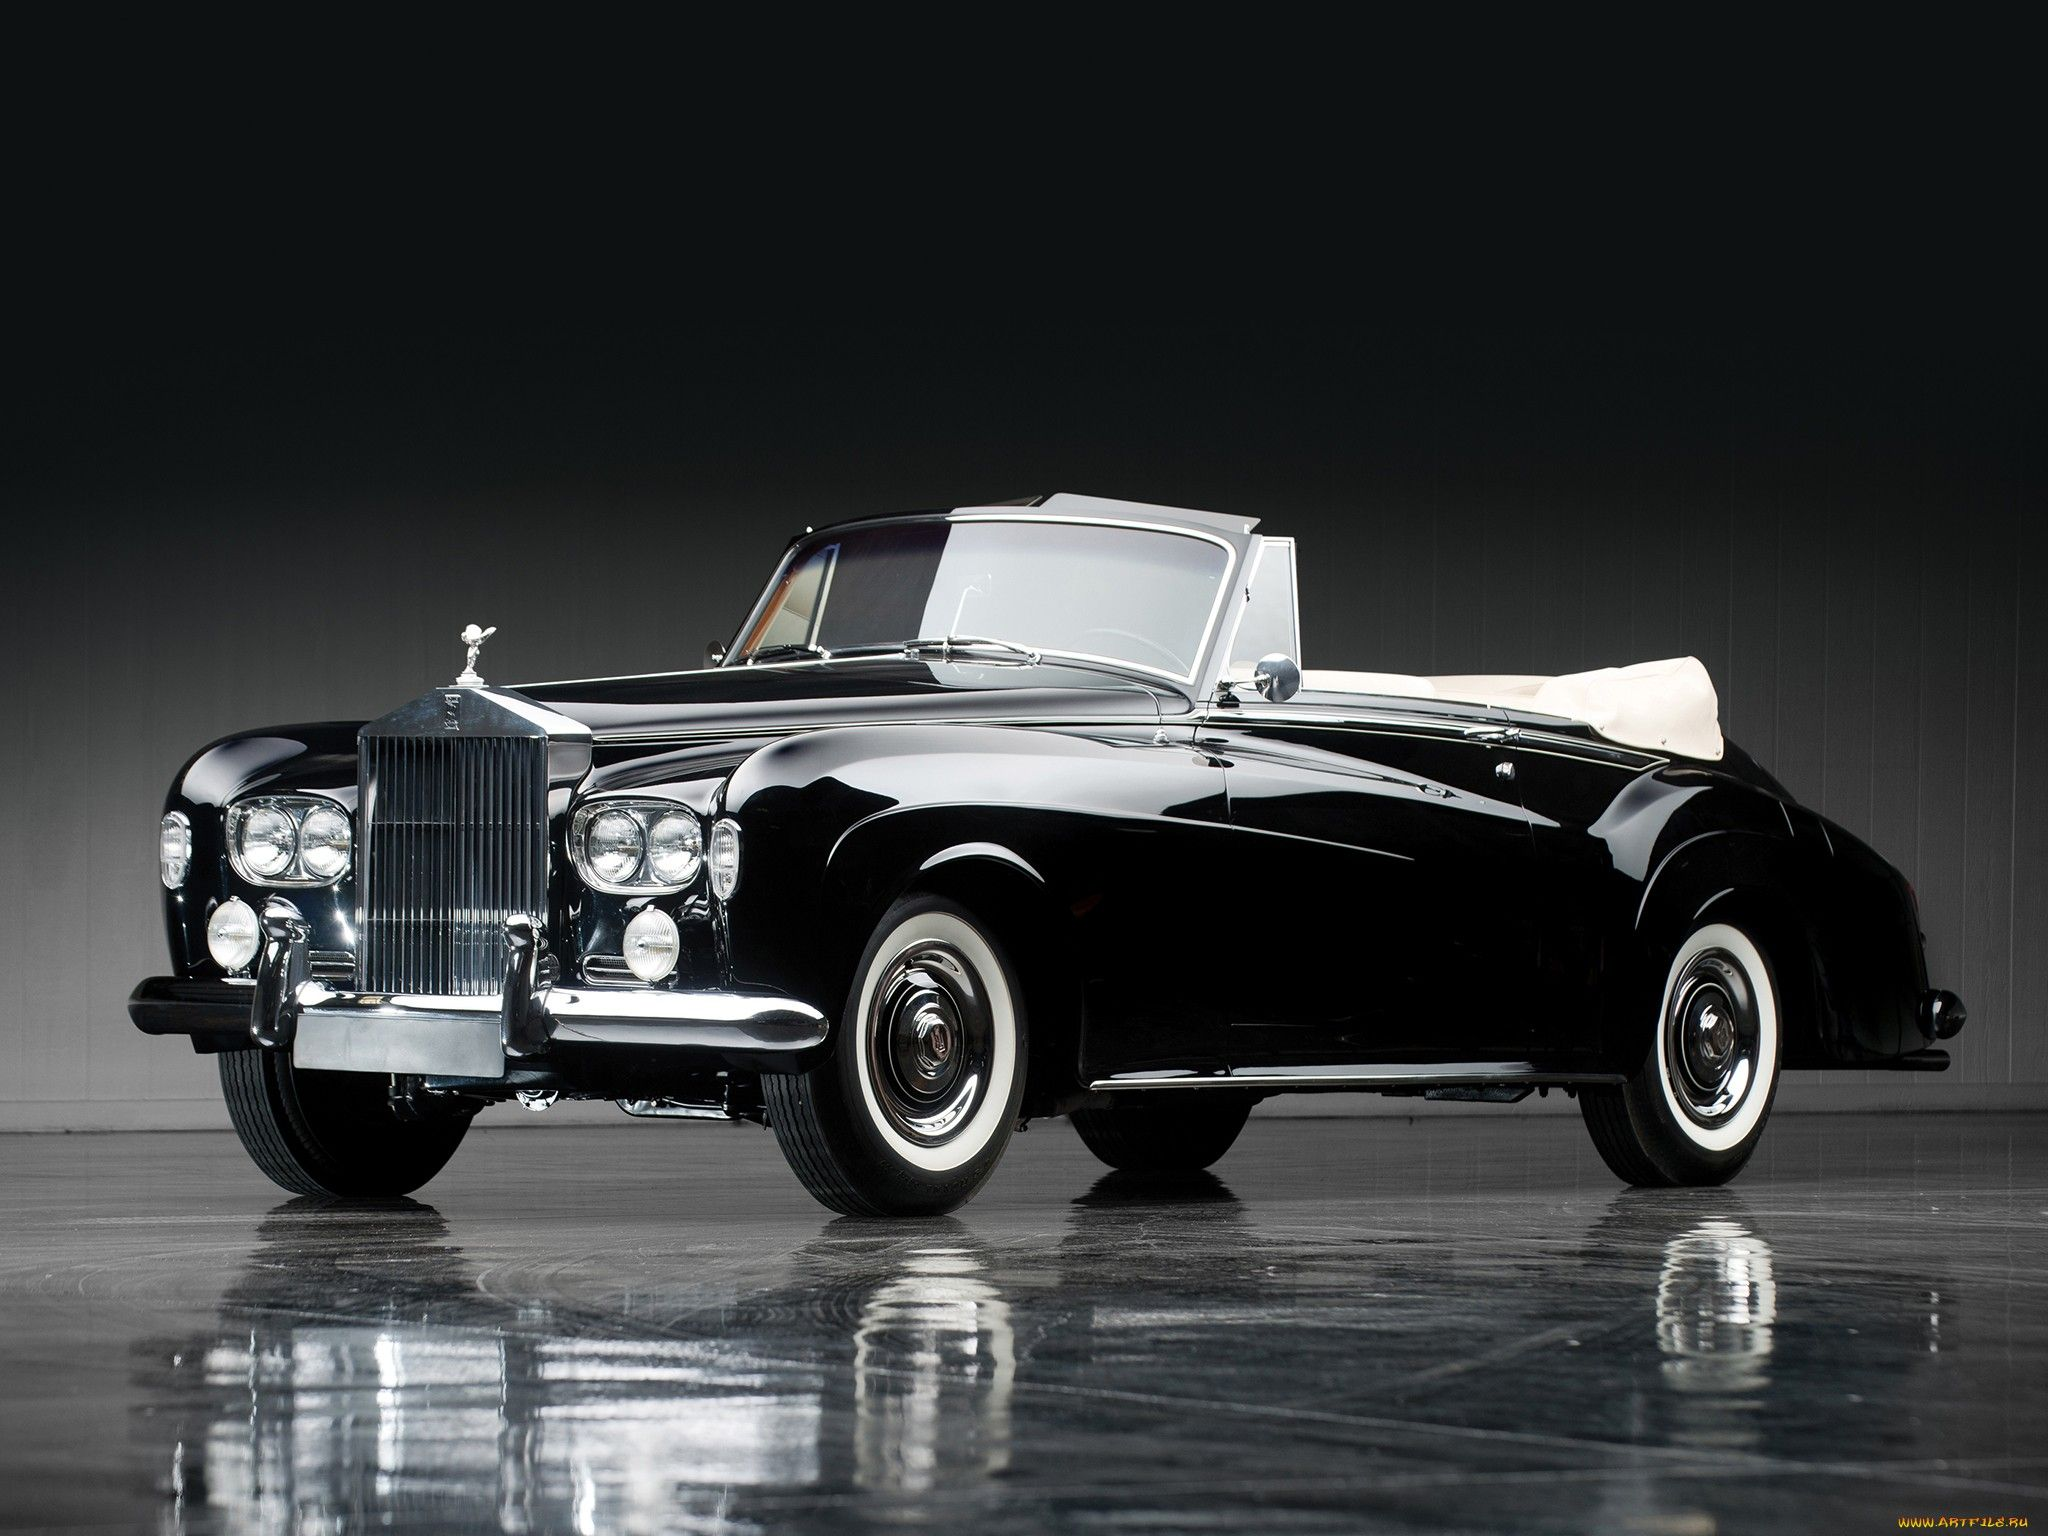 Classic rolls royce wallpaper images with high resolution wallpaper 2048x1536 px 387 45 kb